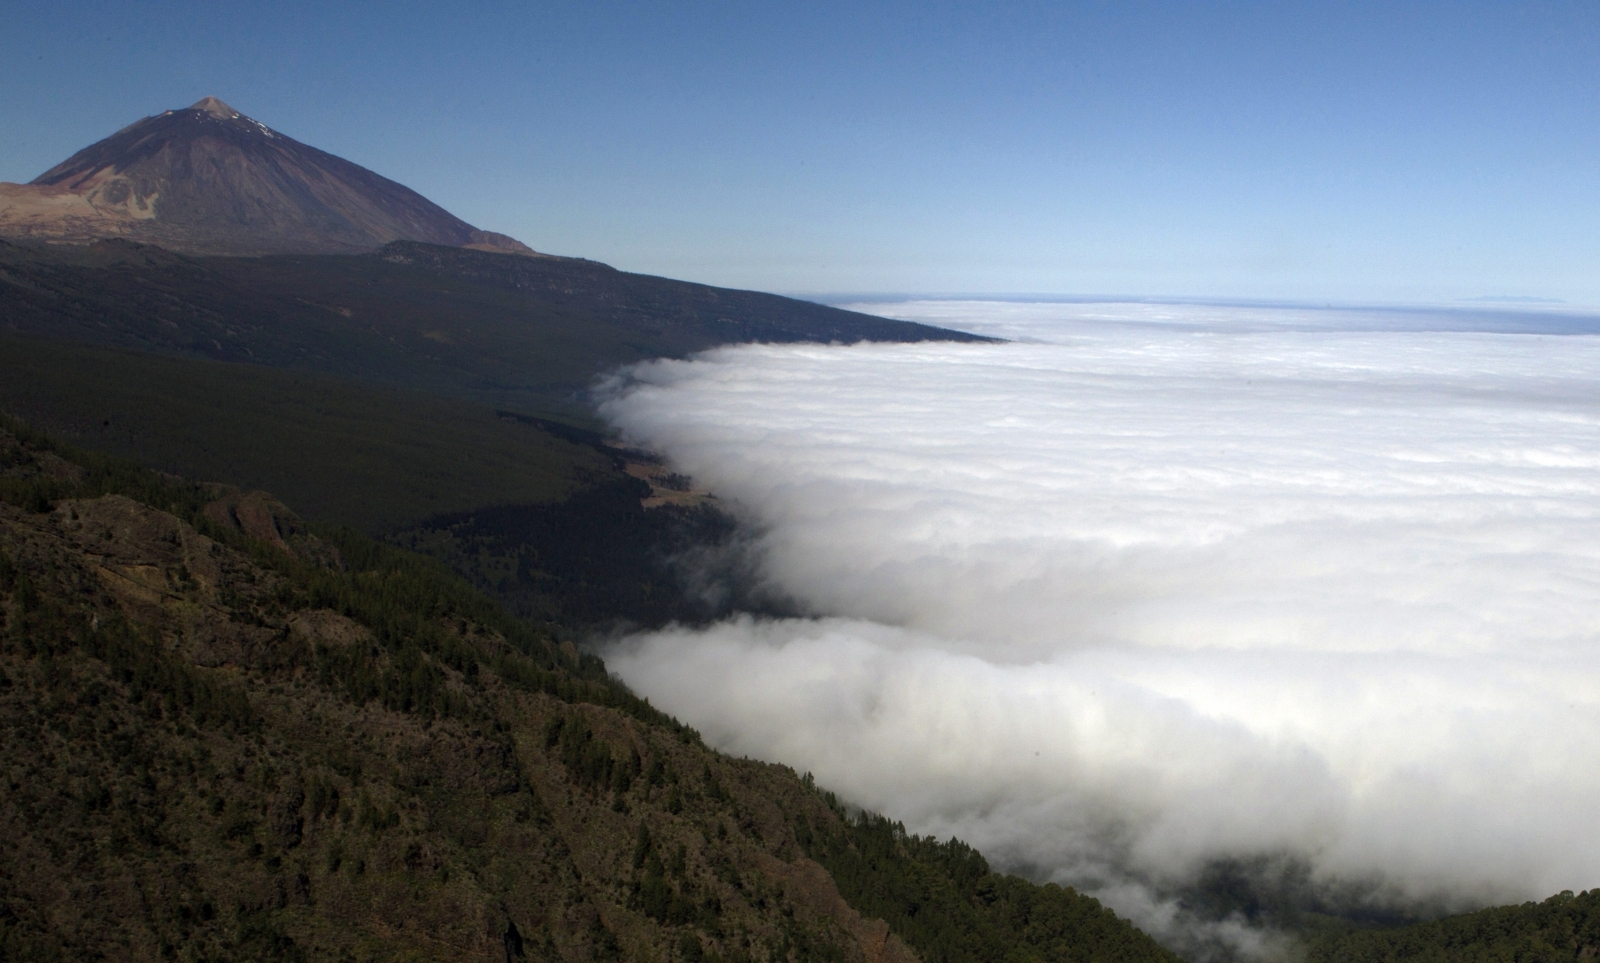 Clouds surround the Mount Teide volcano on Tenerife, Spain's Canary Islands June 9, 2011